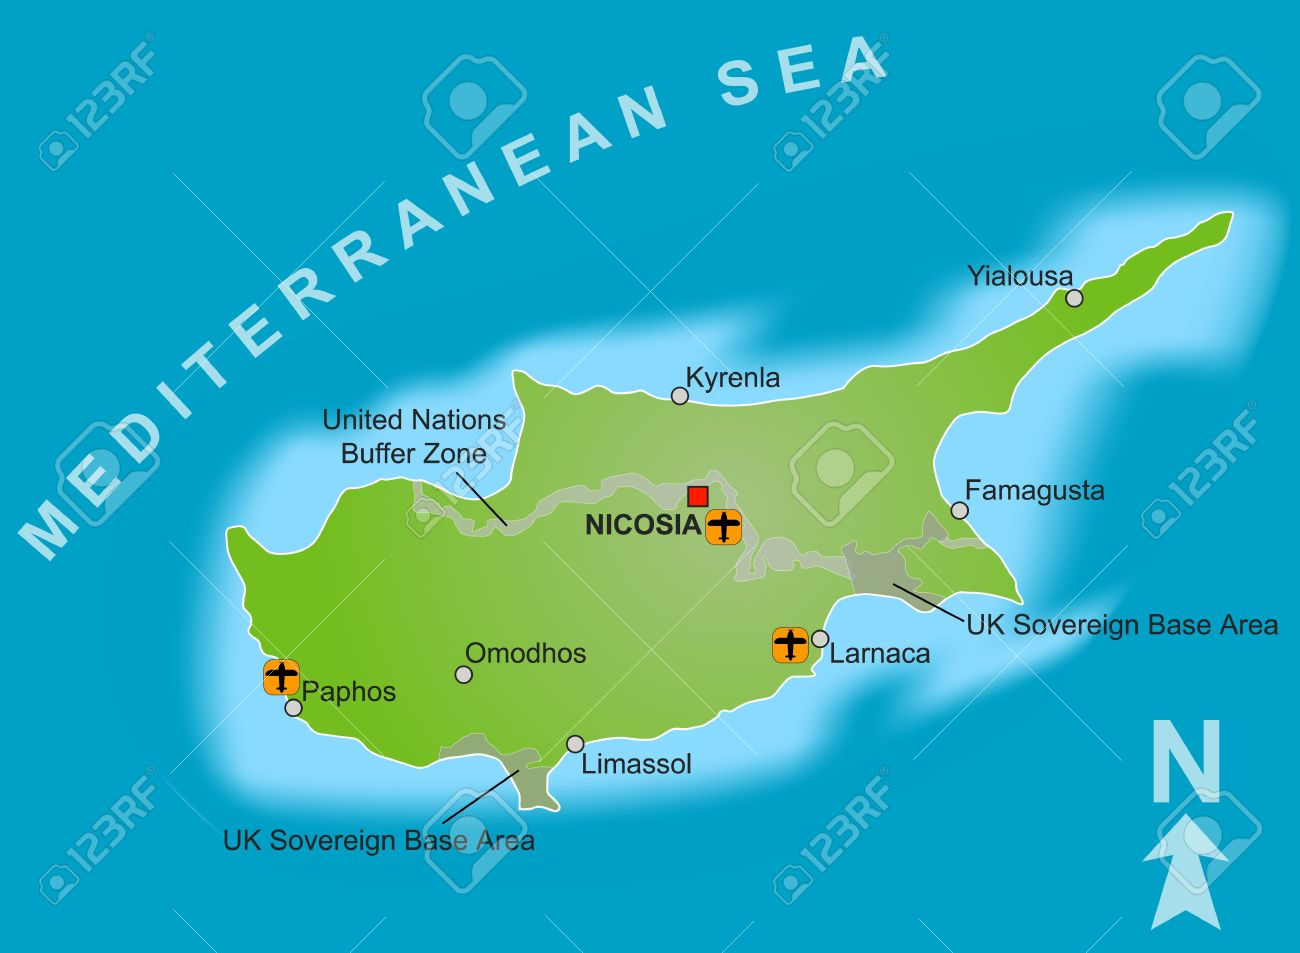 A Stylized Map Of Cyprus Showing Different Cities Airports - Cyprus map with airports